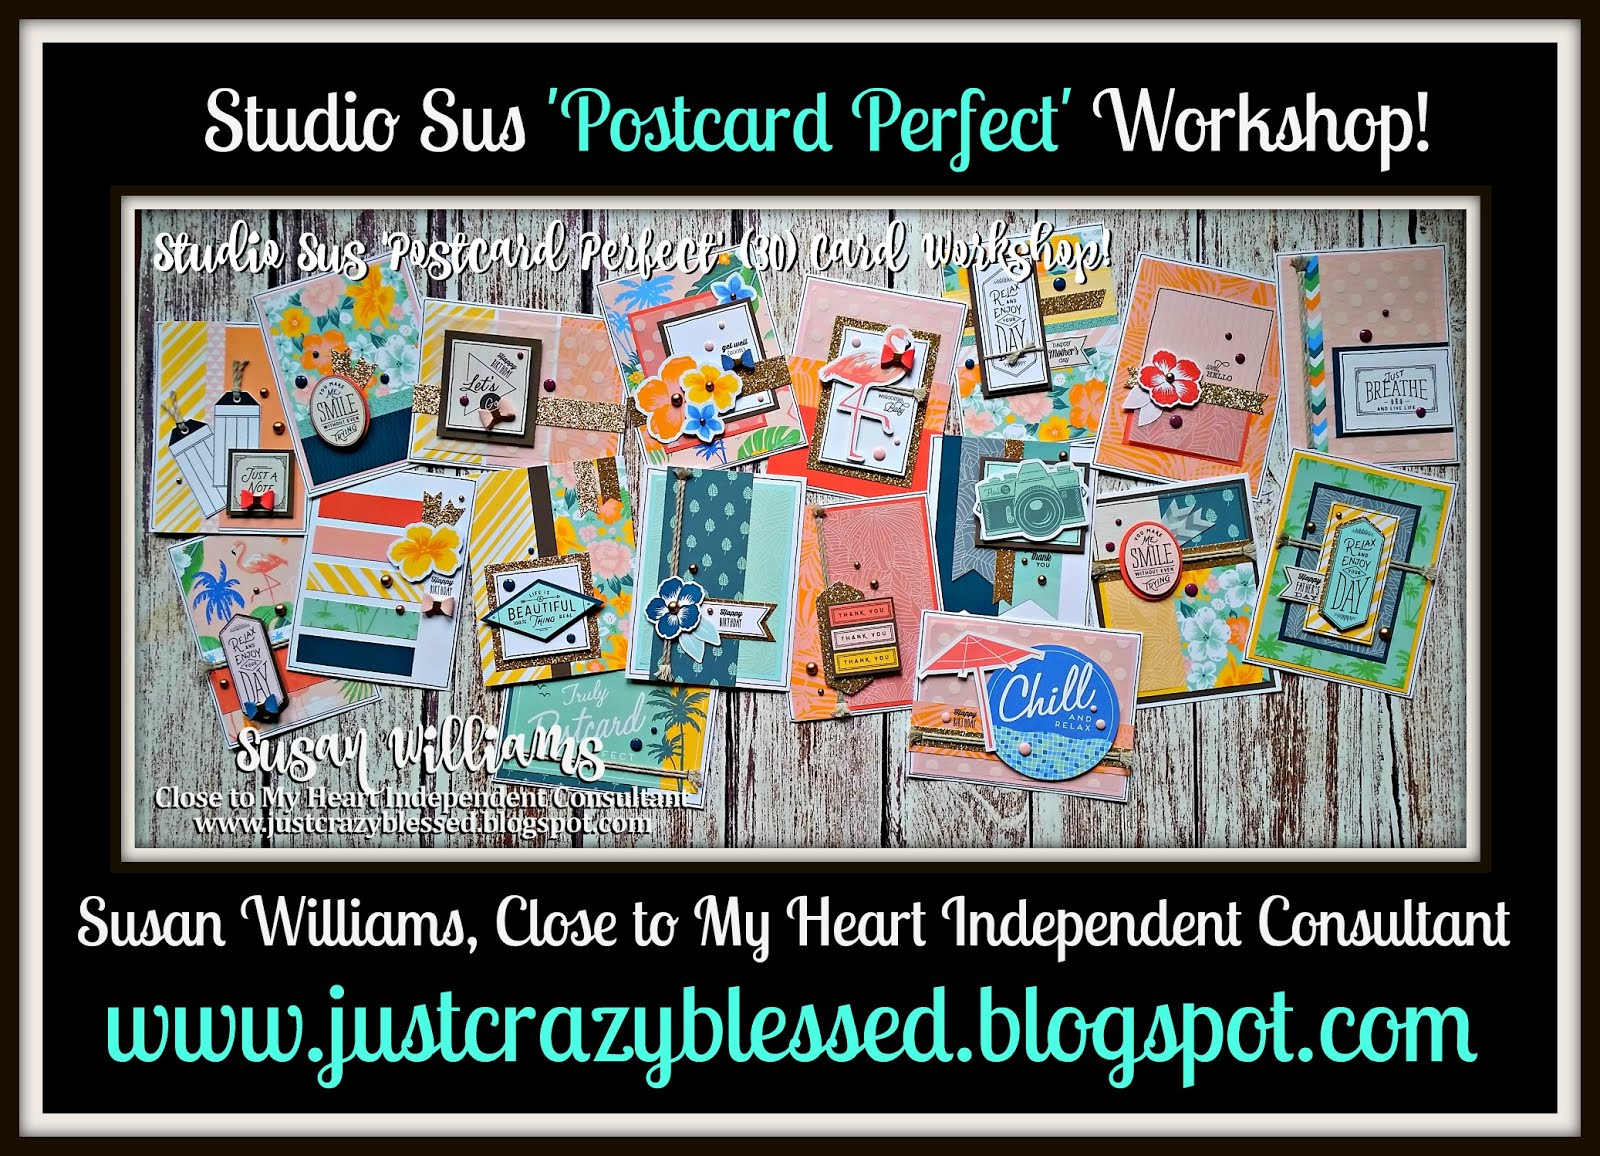 'Postcard Perfect' Cardmaking Workshop!